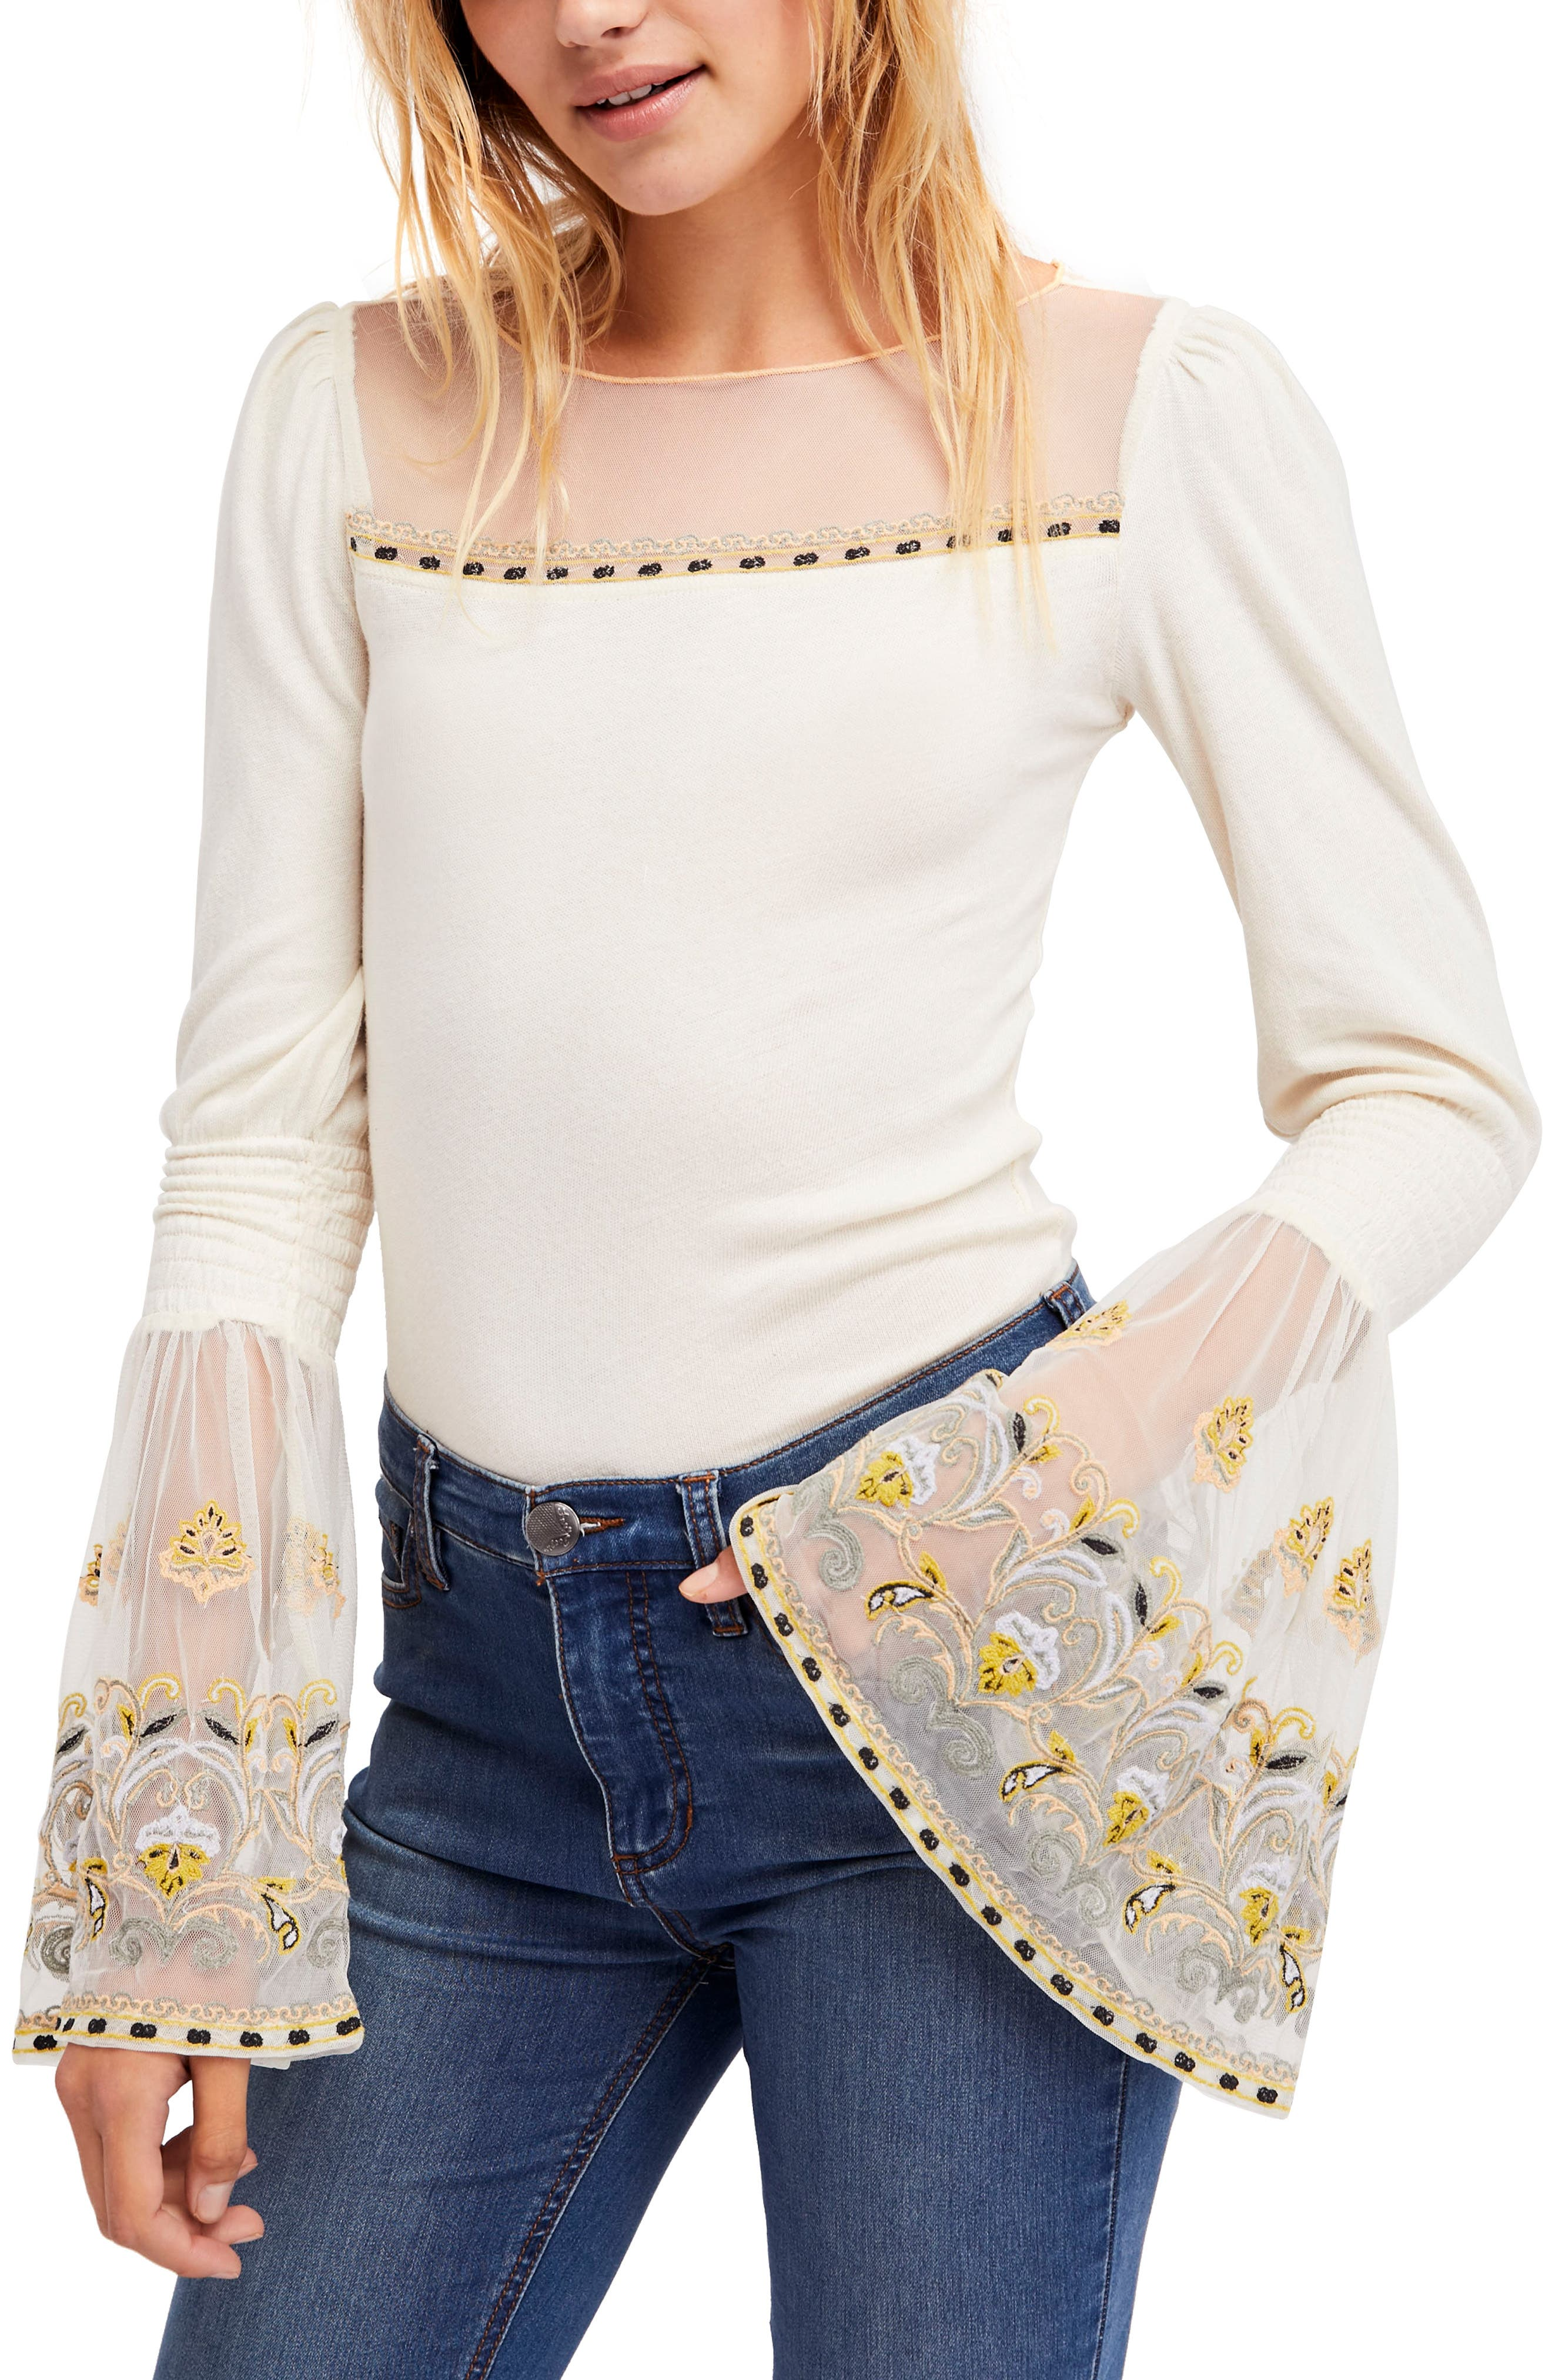 Alternate Image 1 Selected - Free People High Tides Top